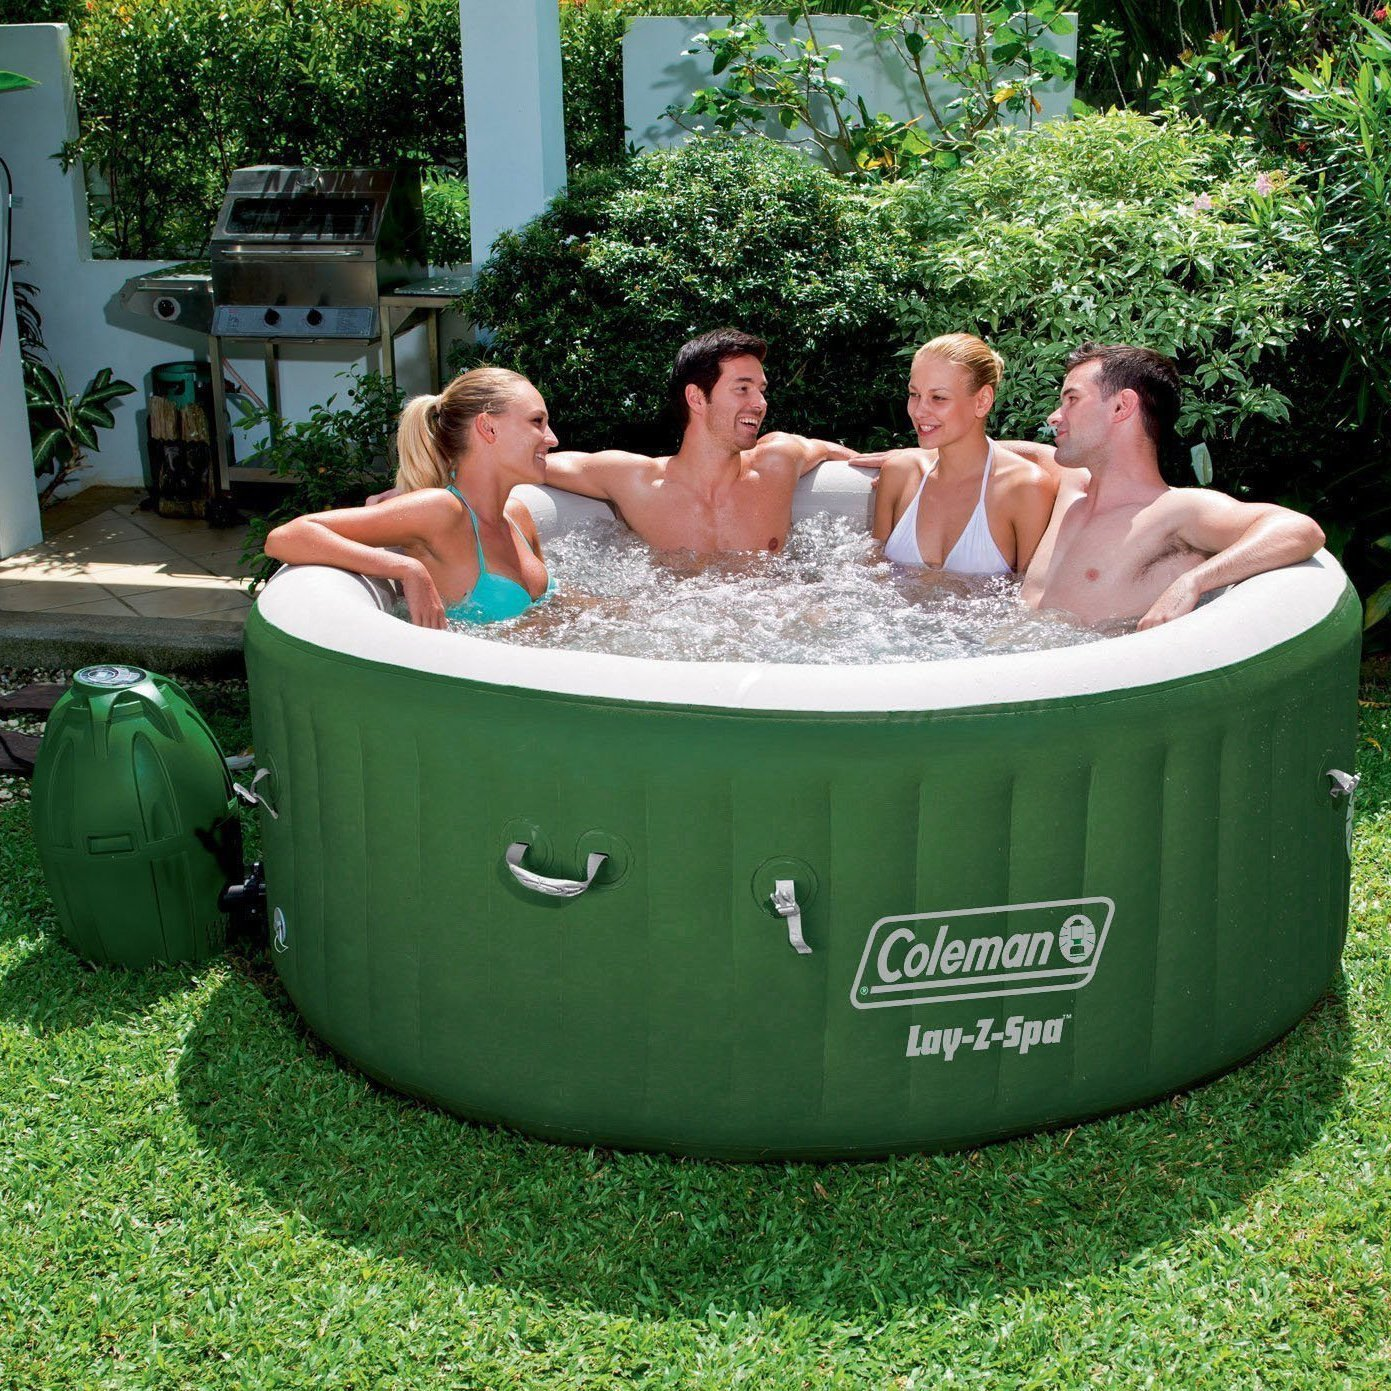 subwoofer with outdoors american system bluetooth spa lounger jet the b tubs tub person spas saunas hot depot n stereo home